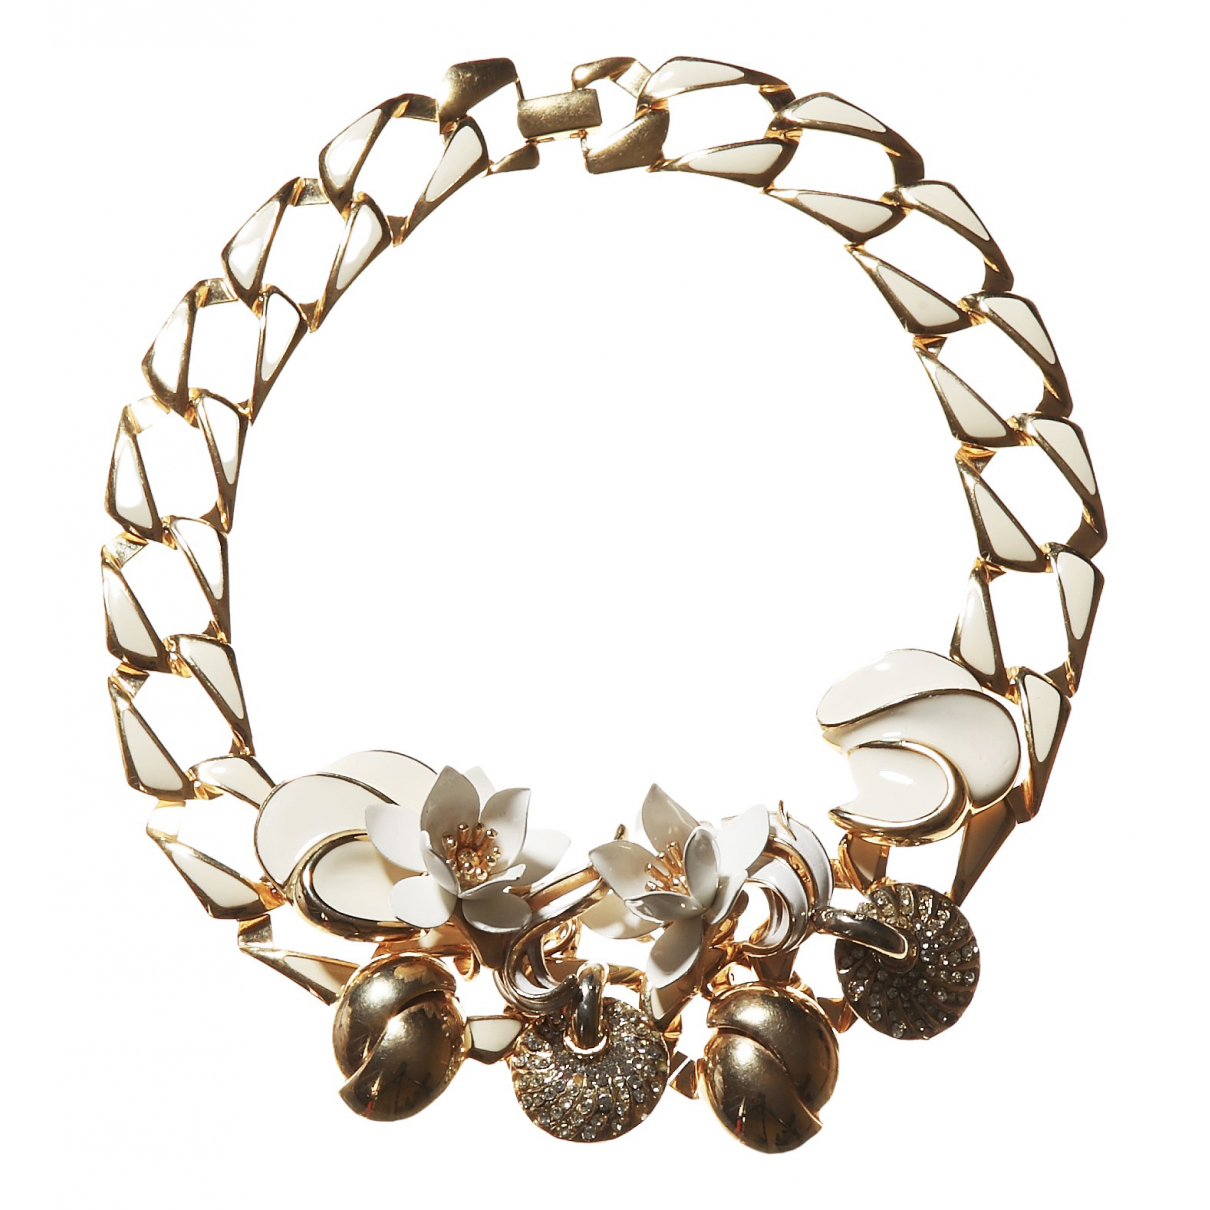 Non Signe / Unsigned  Maille Americaine Kette in  Gold Metall